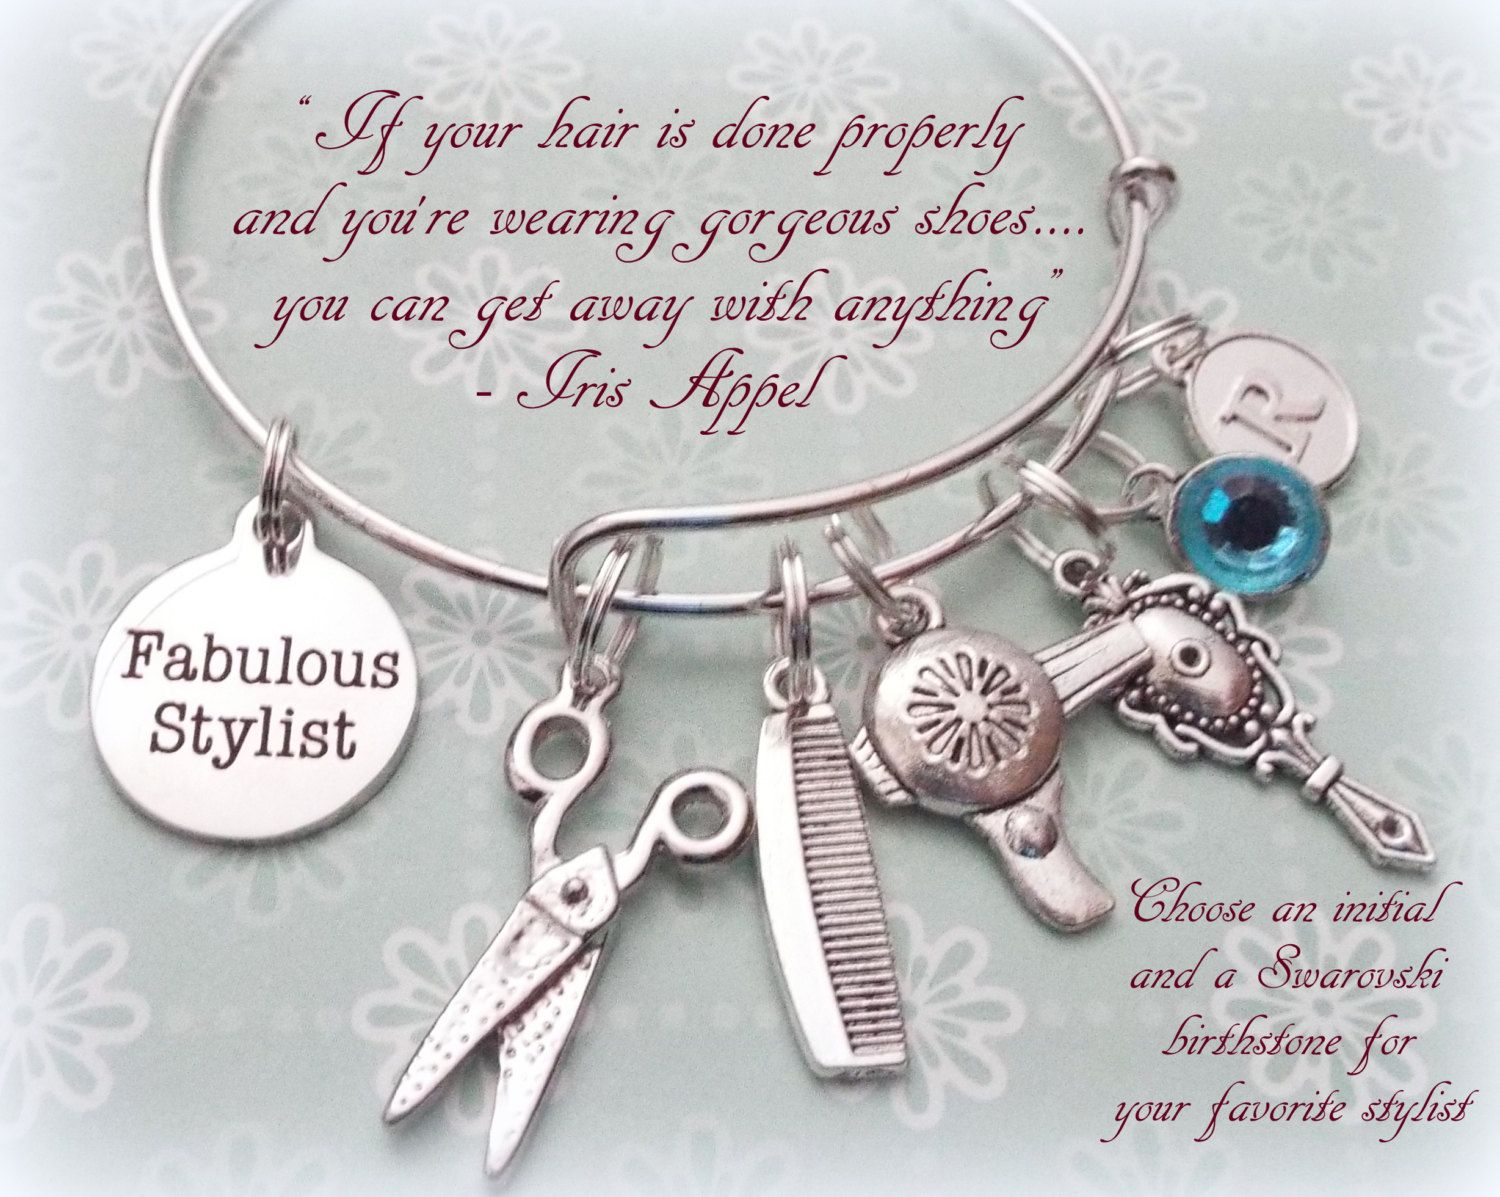 Hairdresser Gift Gift Ideas For Hairstylist Thank You Gift For Hairdresser Personali Hairdresser Gift Hairdresser Gifts Christmas Personalized Gifts For Her